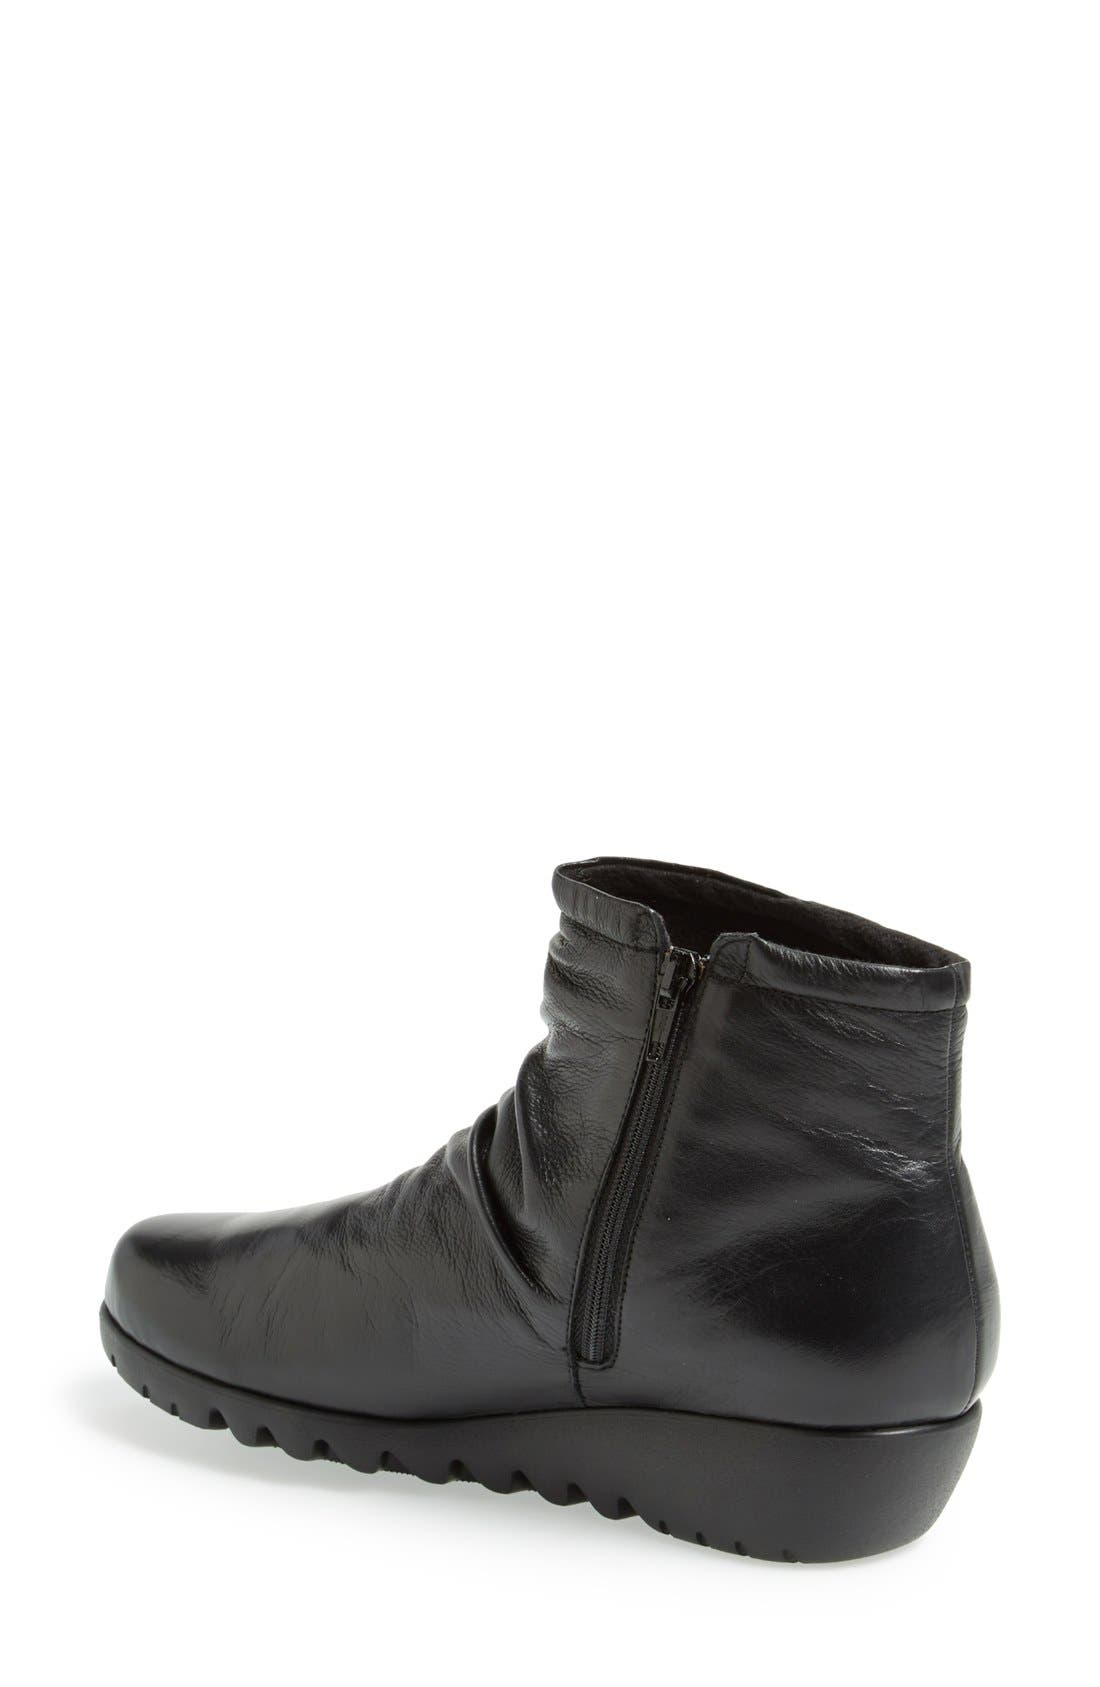 'Riley' Ankle Boot,                             Alternate thumbnail 2, color,                             001